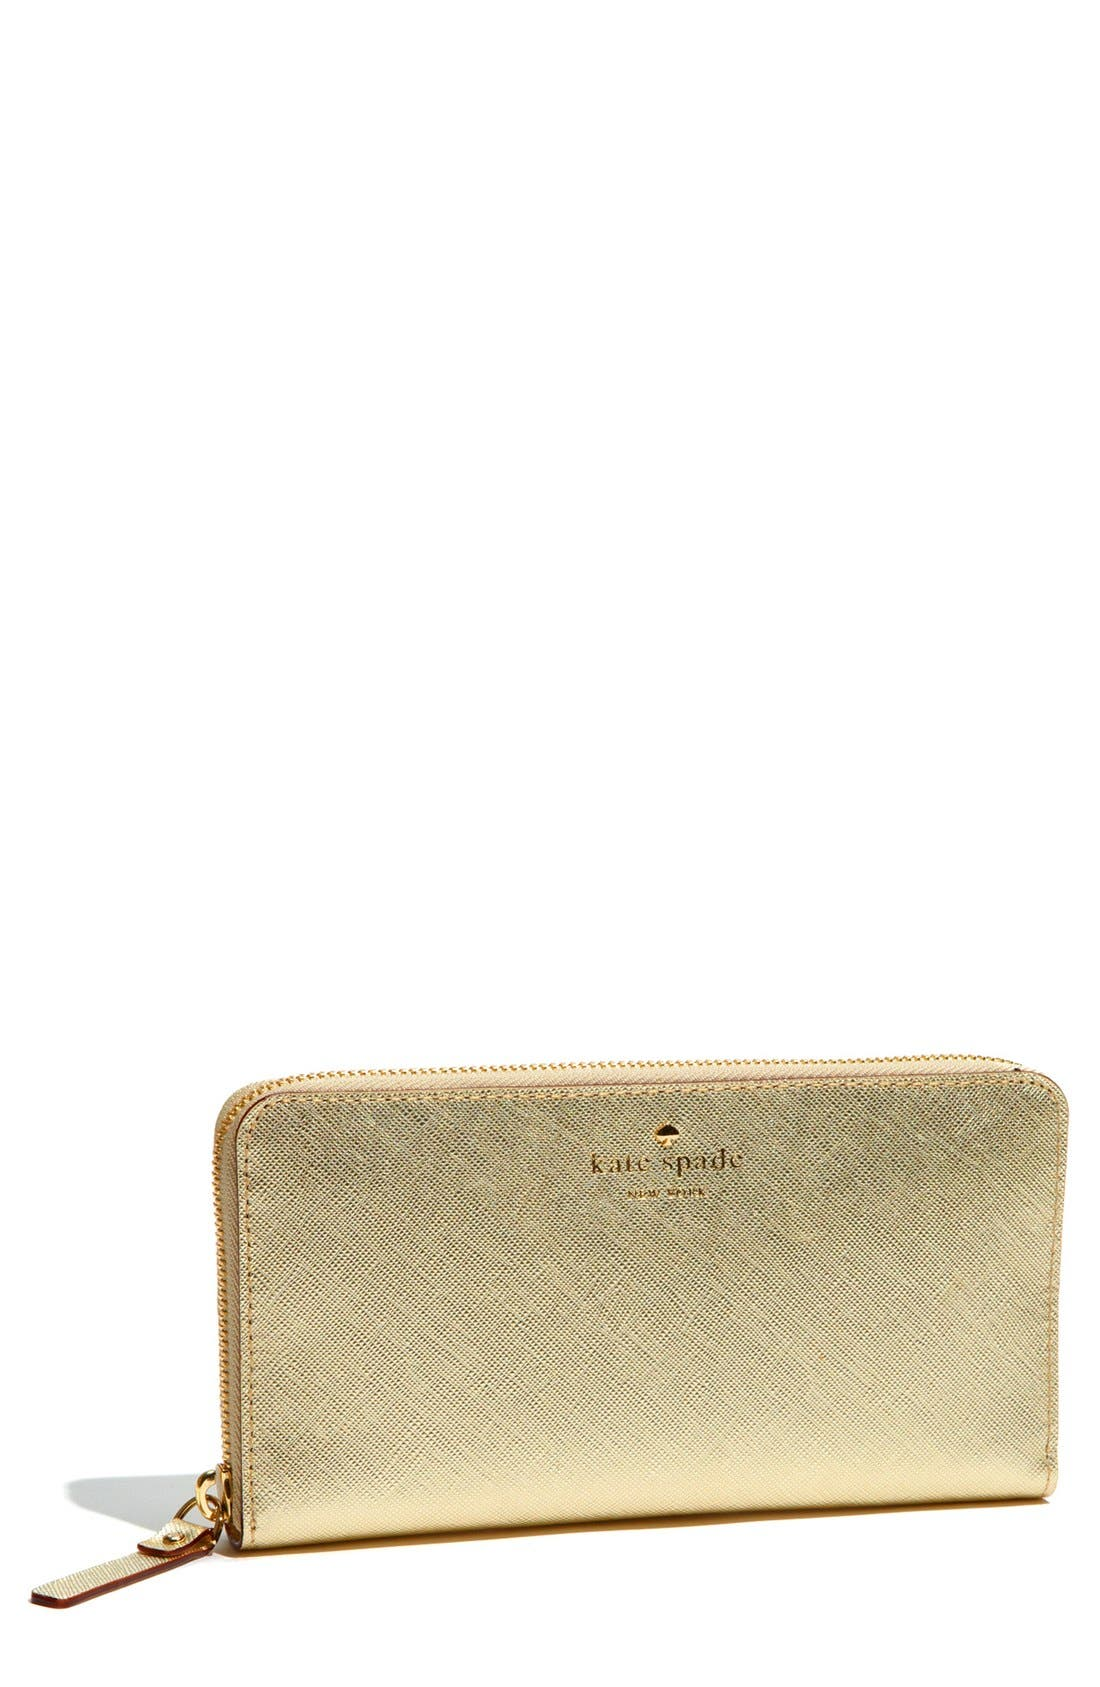 Main Image - kate spade new york 'mikas pond - lacey' zip around wallet